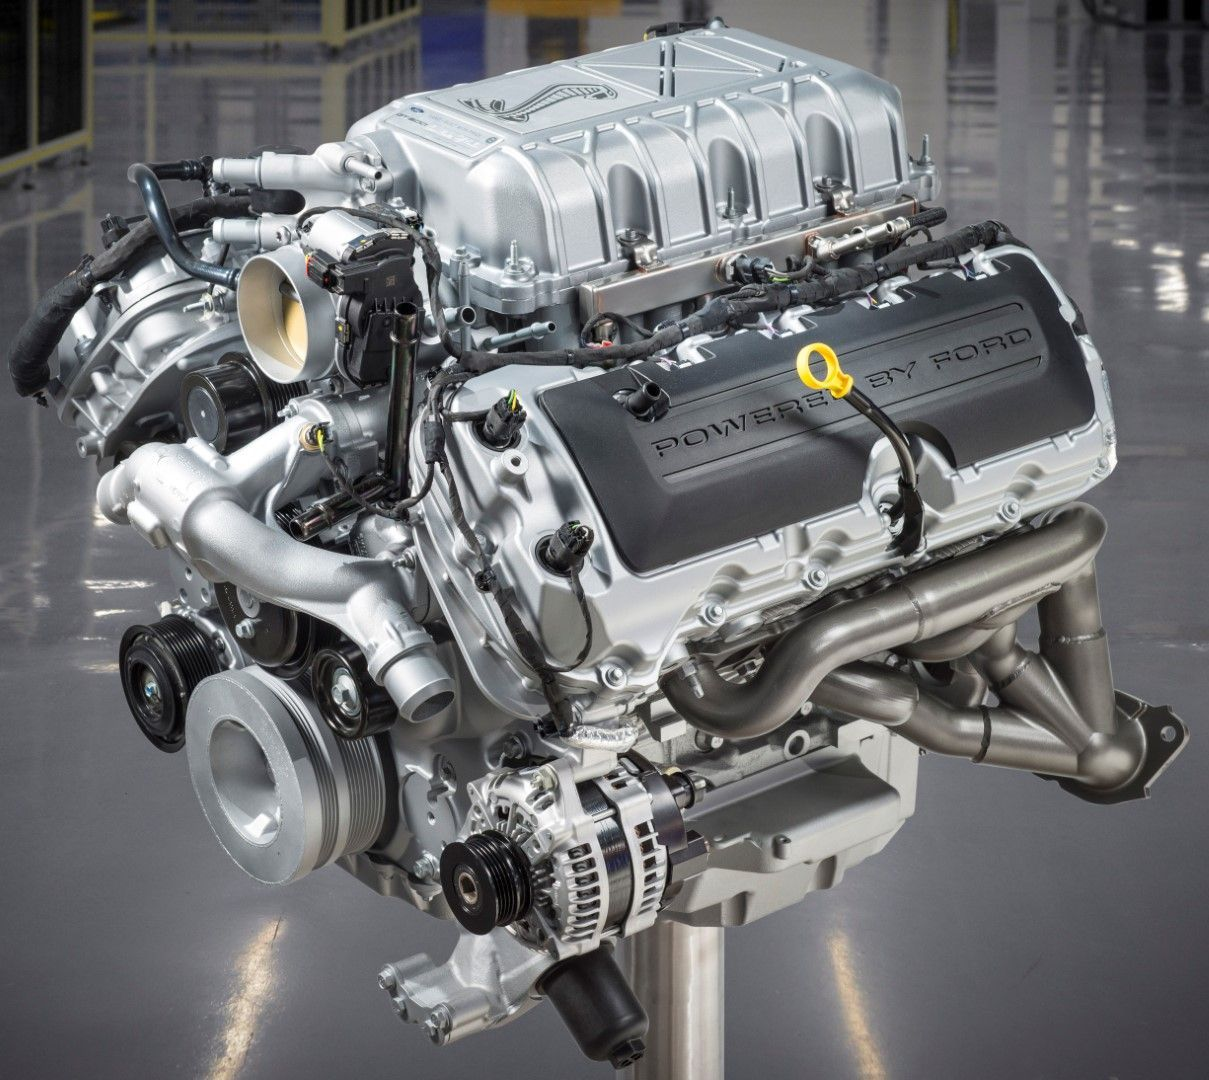 The 2020 Shelby Gt500 760 Horsepower 5 2 Liter V8 Engine Is The Most Power And Torque Dense Supercharged V8 In The World Ford Mustang Shelby Ford Mustang Shelby Gt500 Shelby Gt500